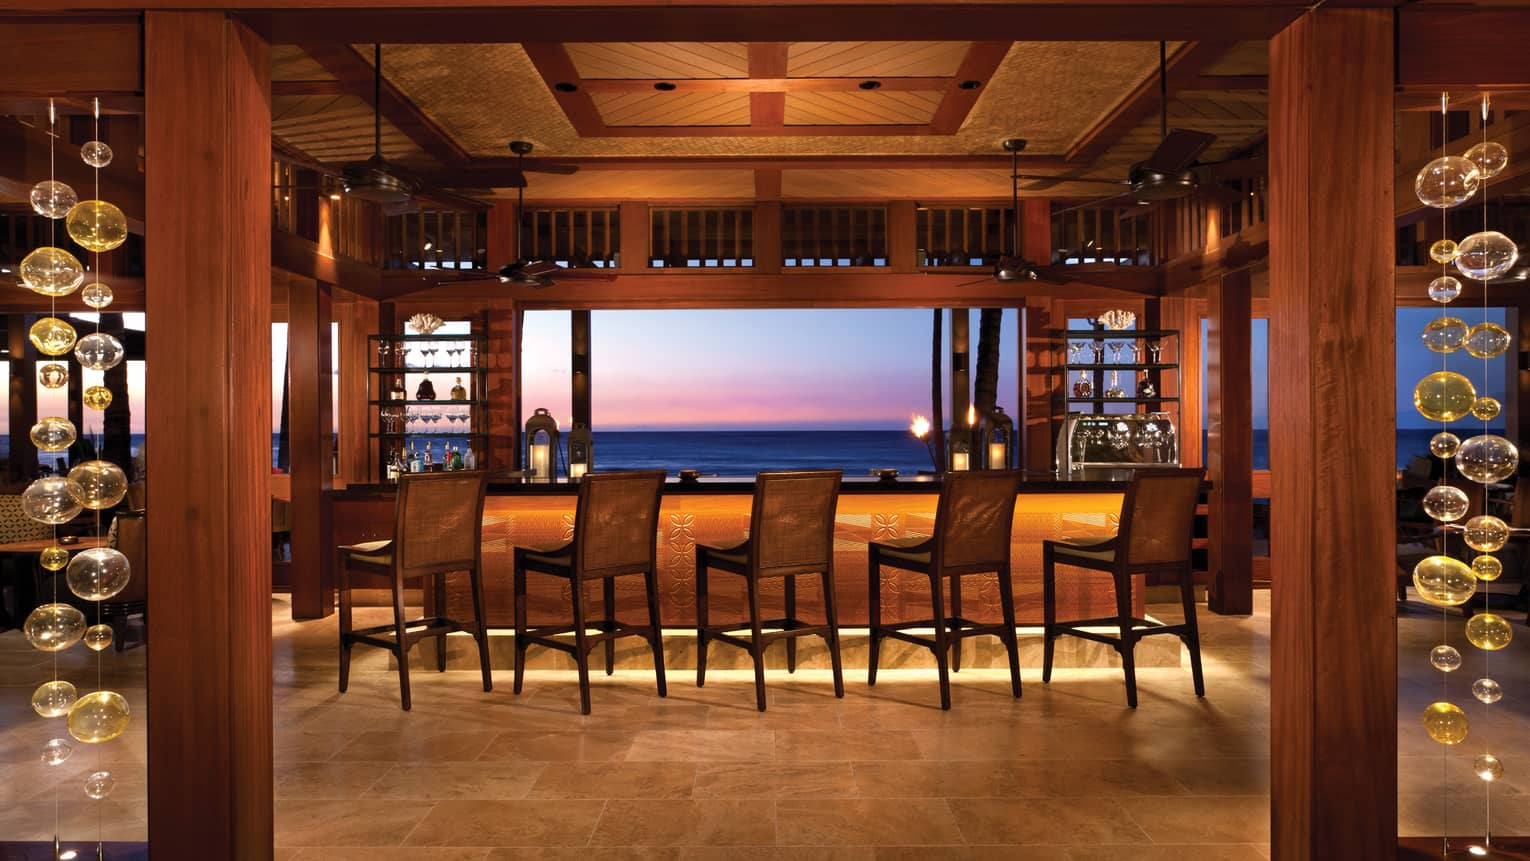 Stools along bar in ULU Sushi Lounge dining room, sunset views